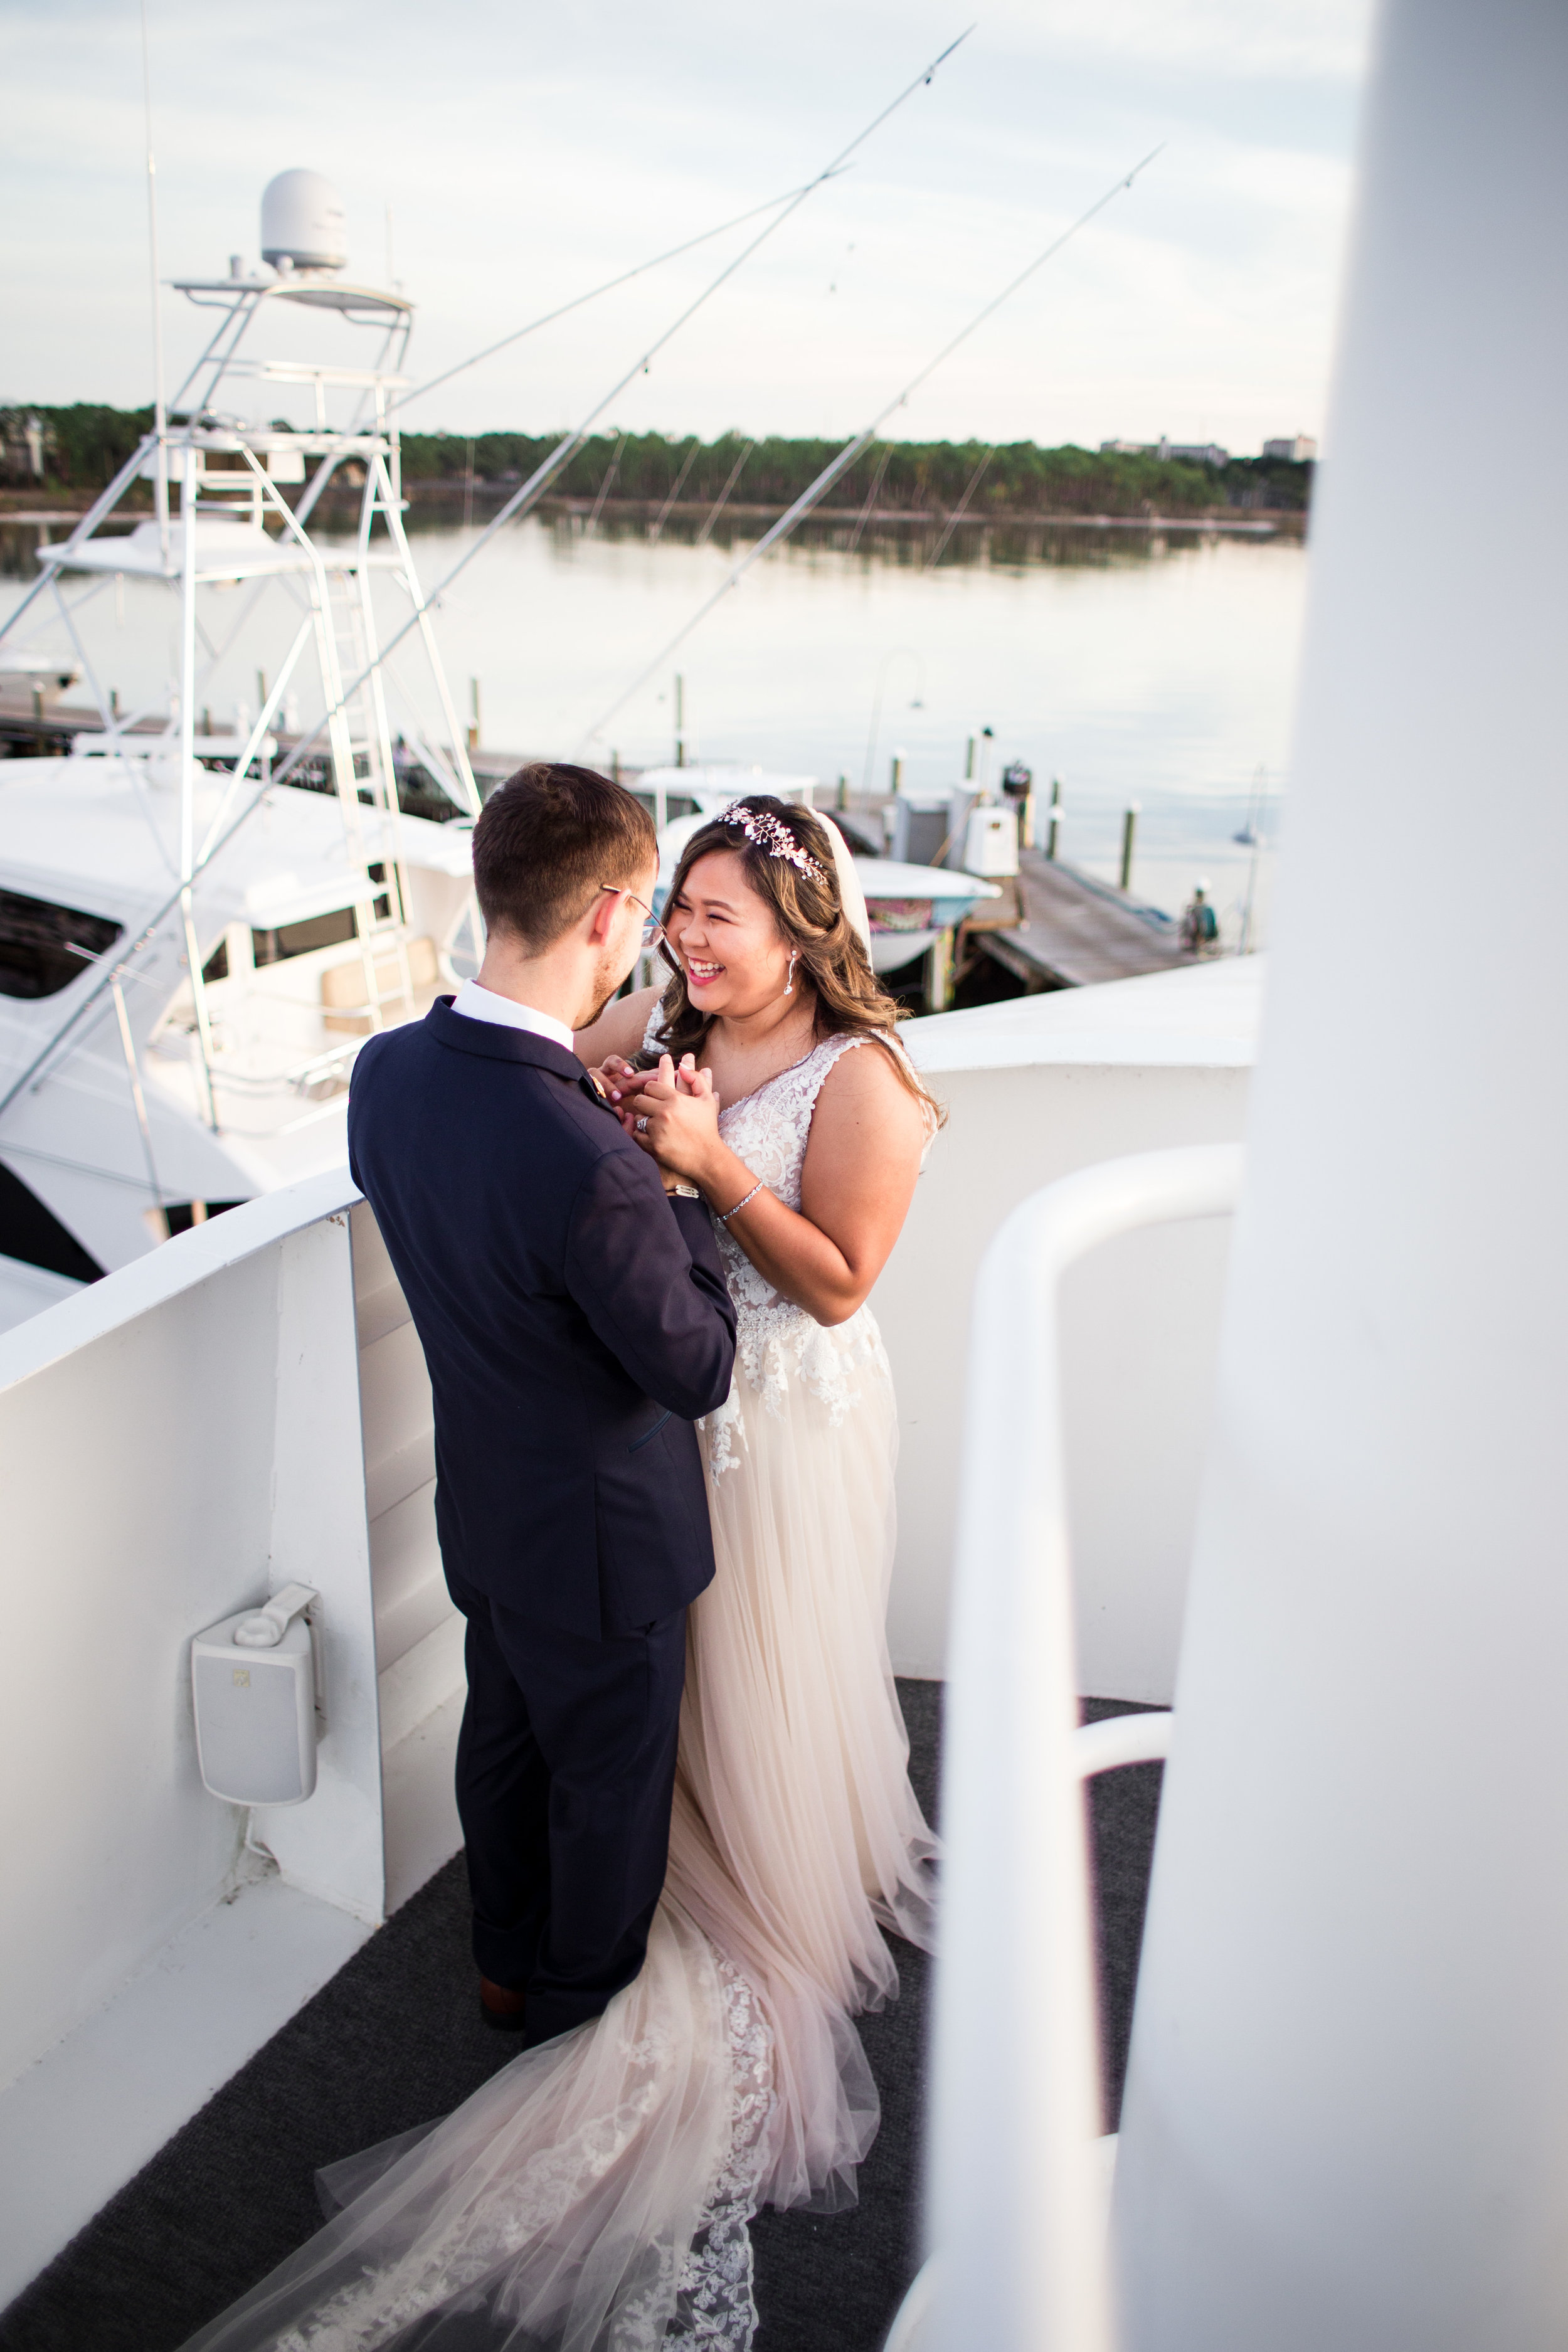 Solaris-Yacht-Destin-Florida-Wedding-Photography-Jerica-Chad-25.jpg